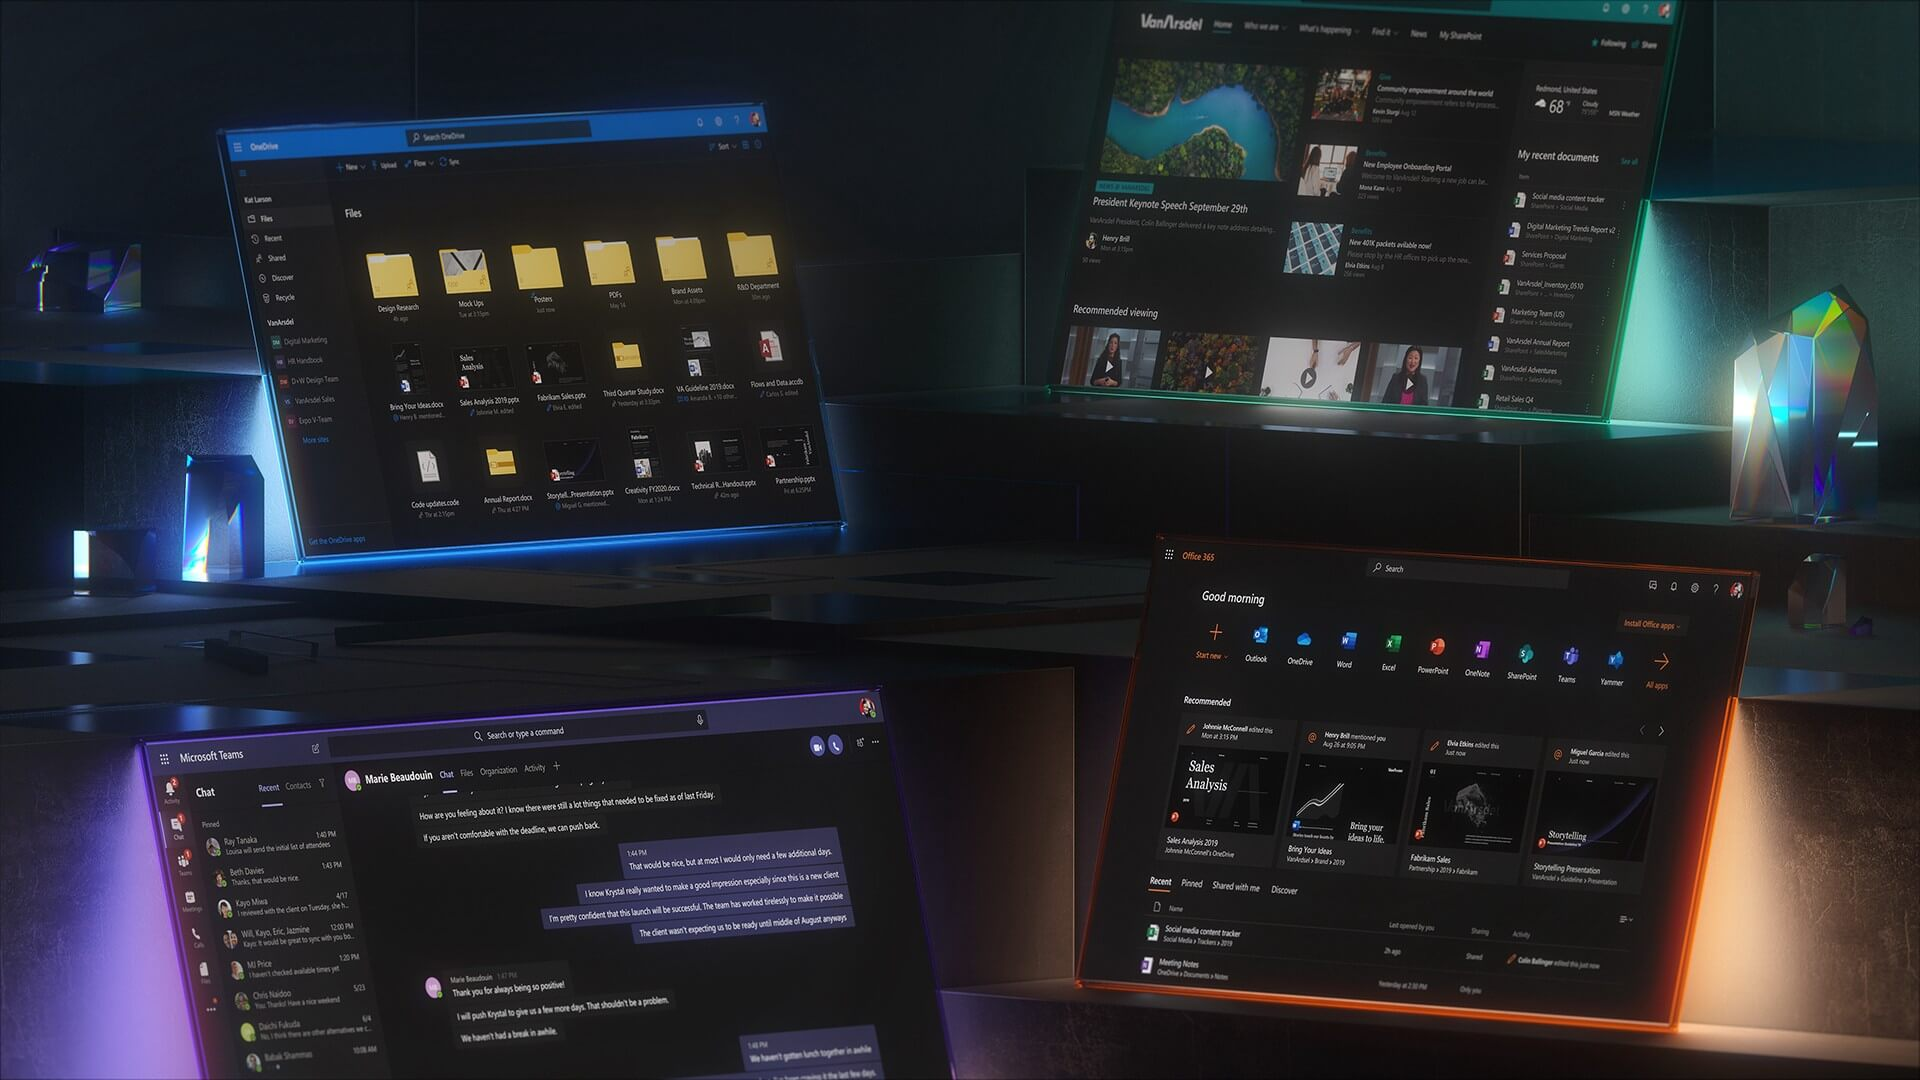 Microsoft starts rolling out Dark Mode, starting with Outlook for Android and iOS and Office.com